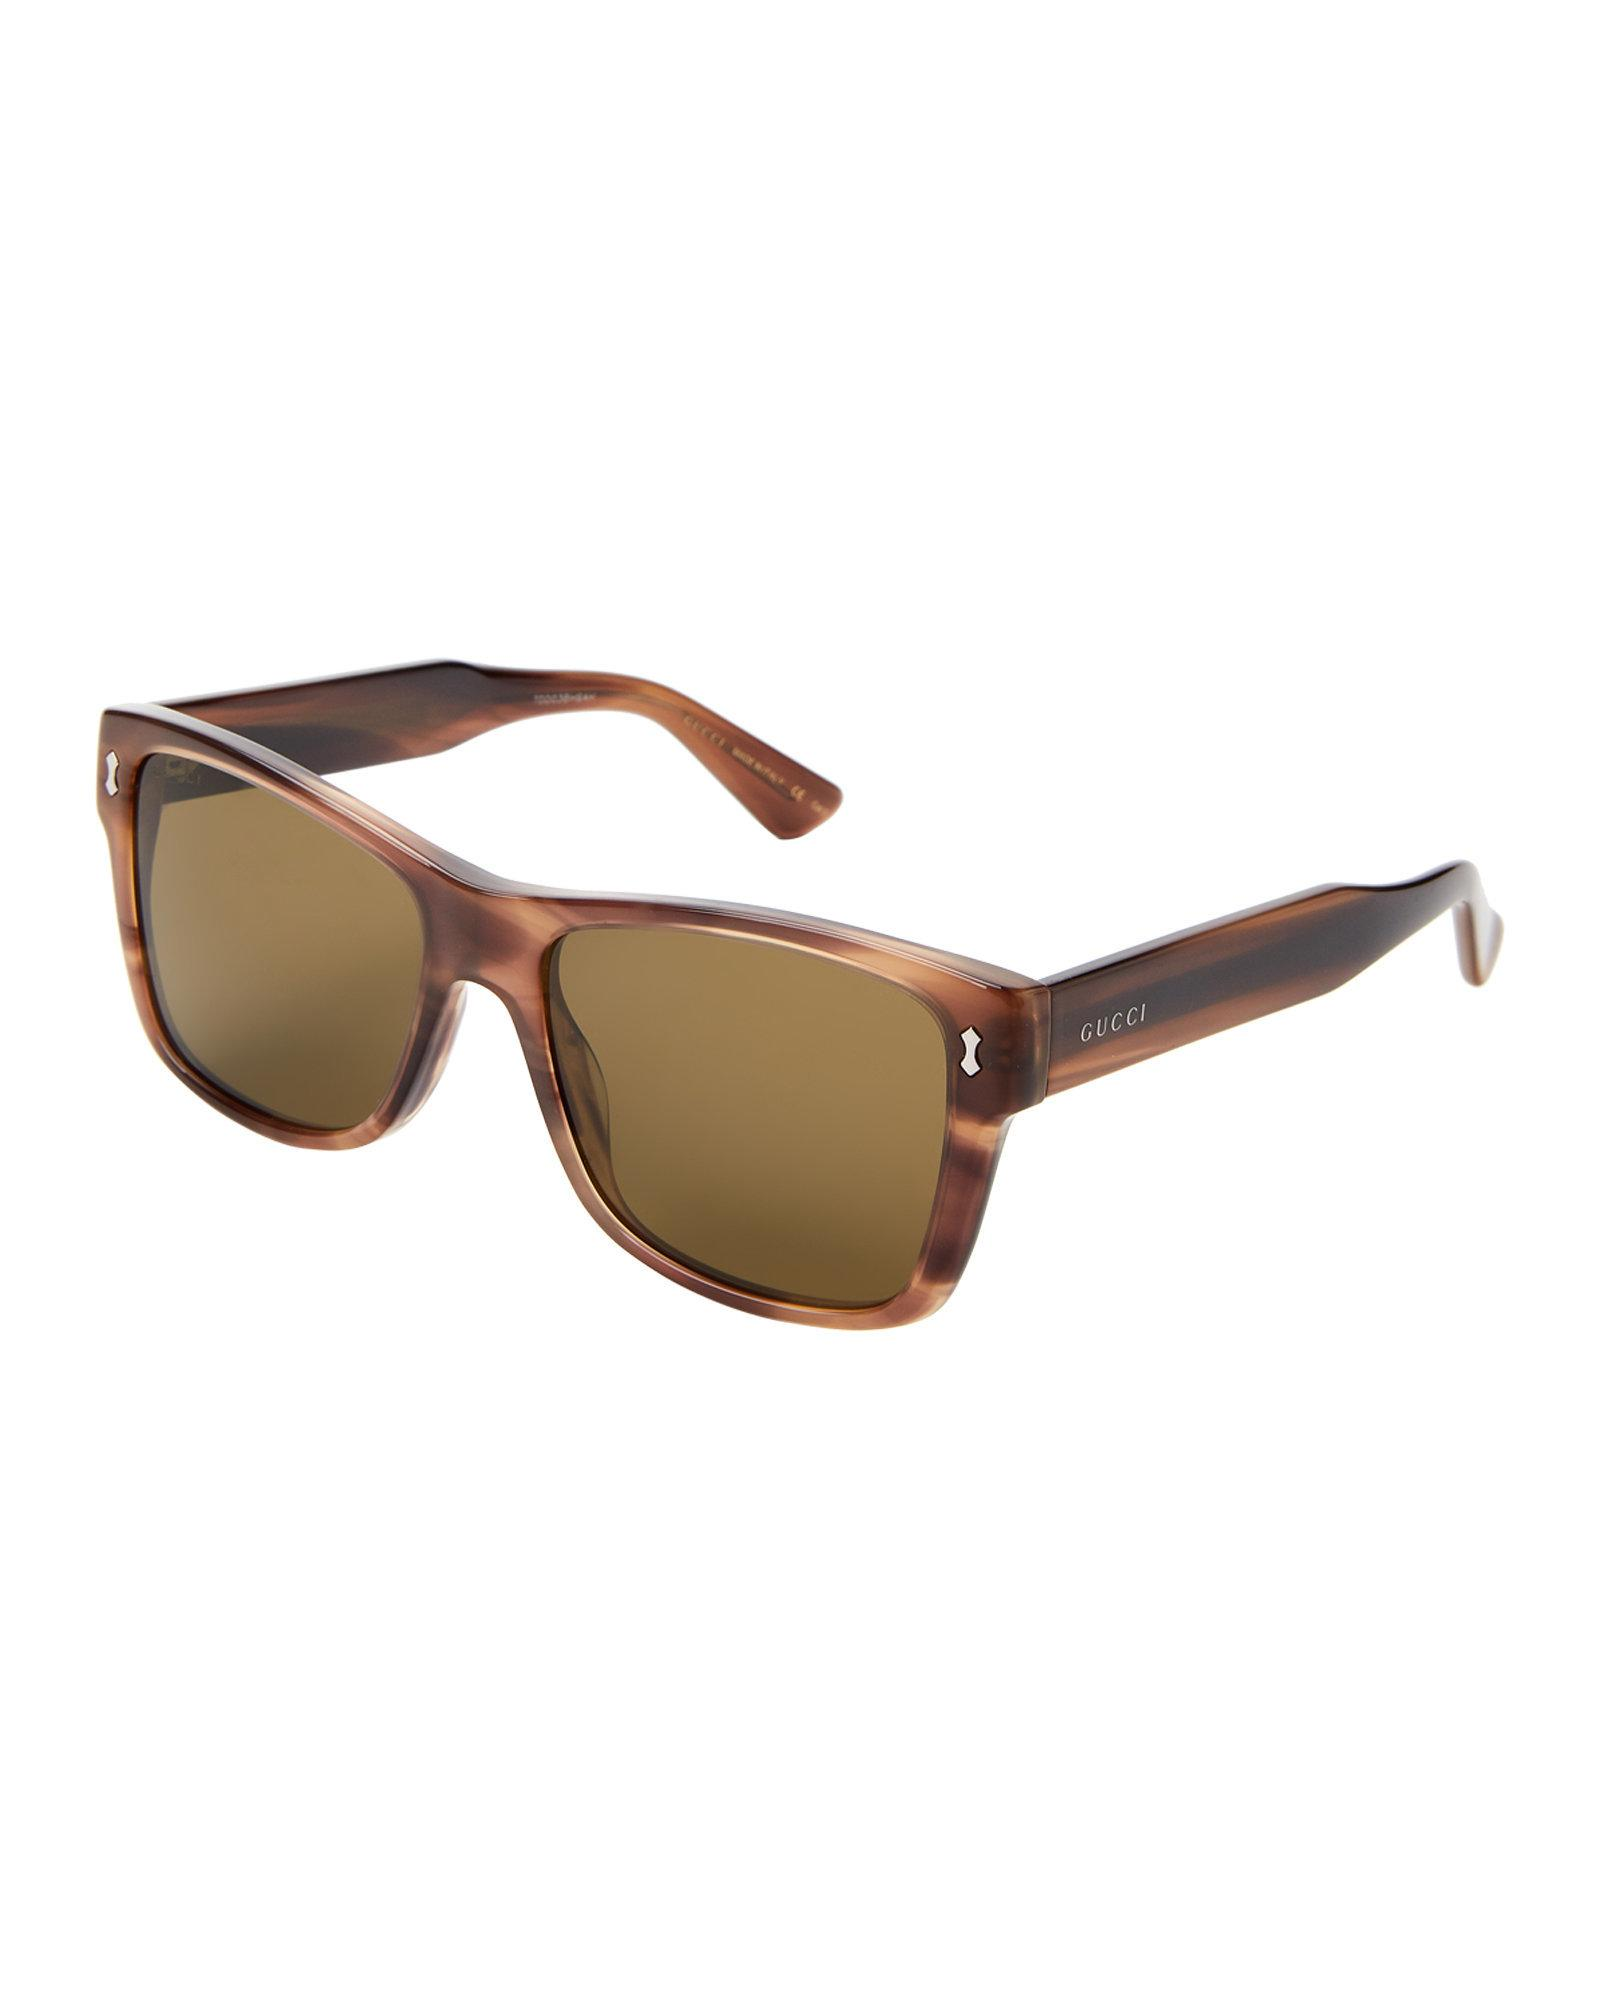 1153e89cdaf Lyst - Gucci Gg 0052 s Tortoiseshell-look Rectangle Sunglasses in Brown